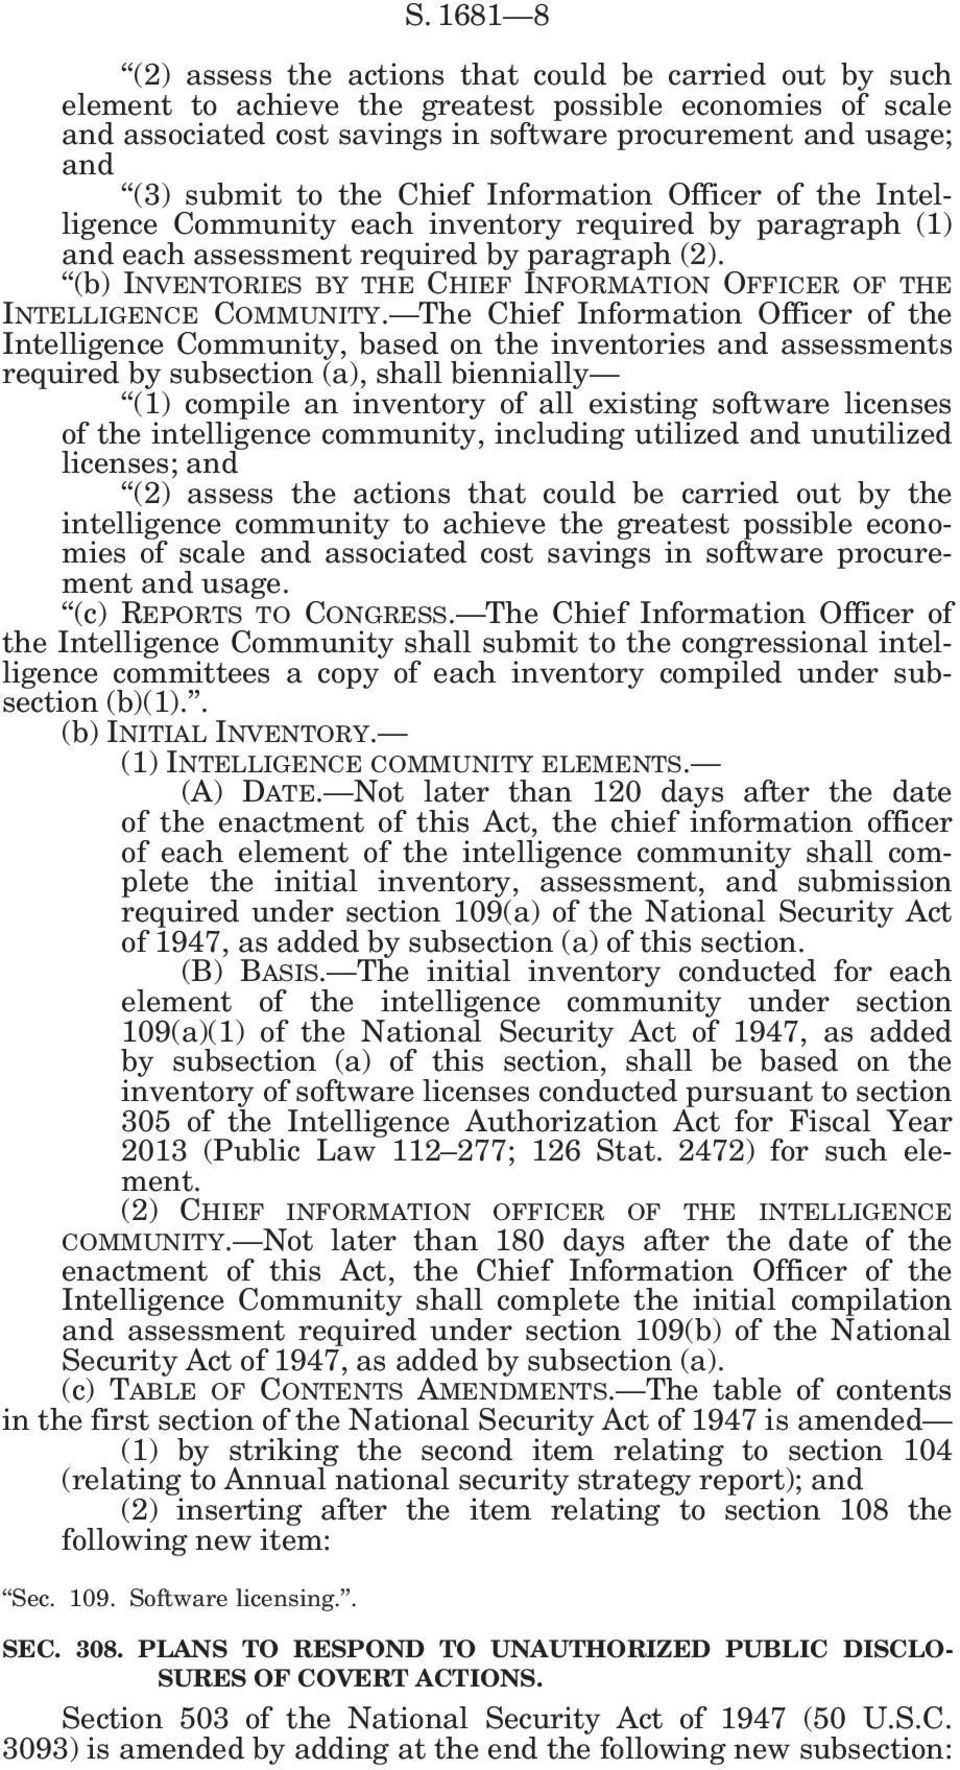 (b) INVENTORIES BY THE CHIEF INFORMATION OFFICER OF THE INTELLIGENCE COMMUNITY.